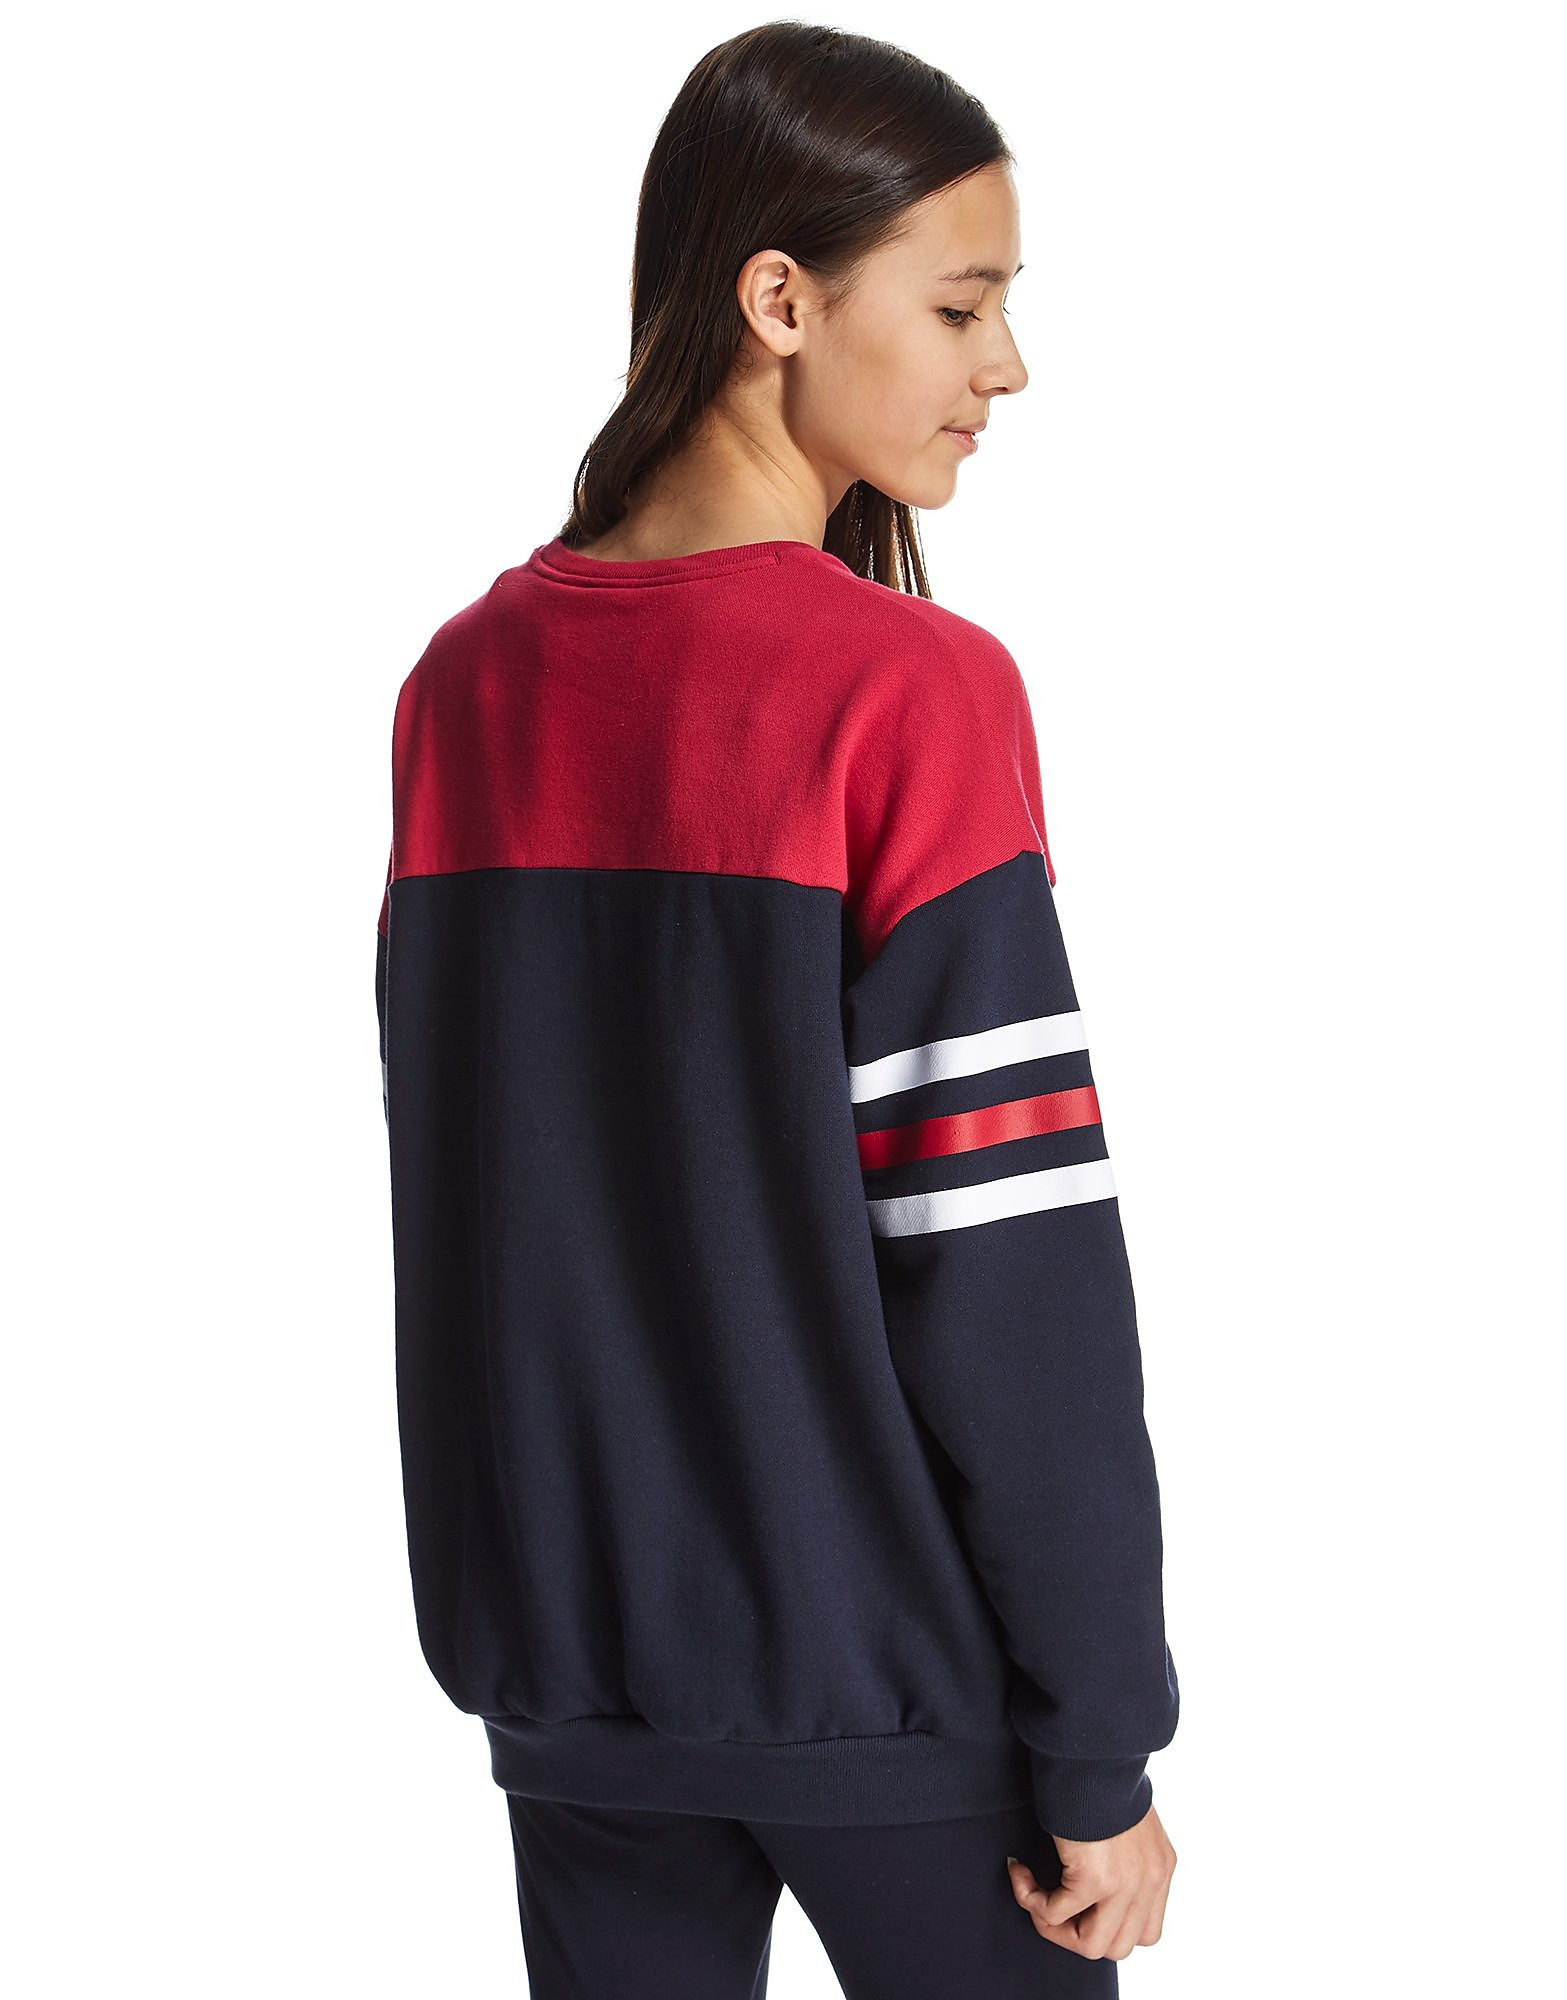 adidas Originals Girls' Colour Block Crew Sweatshirt Junior